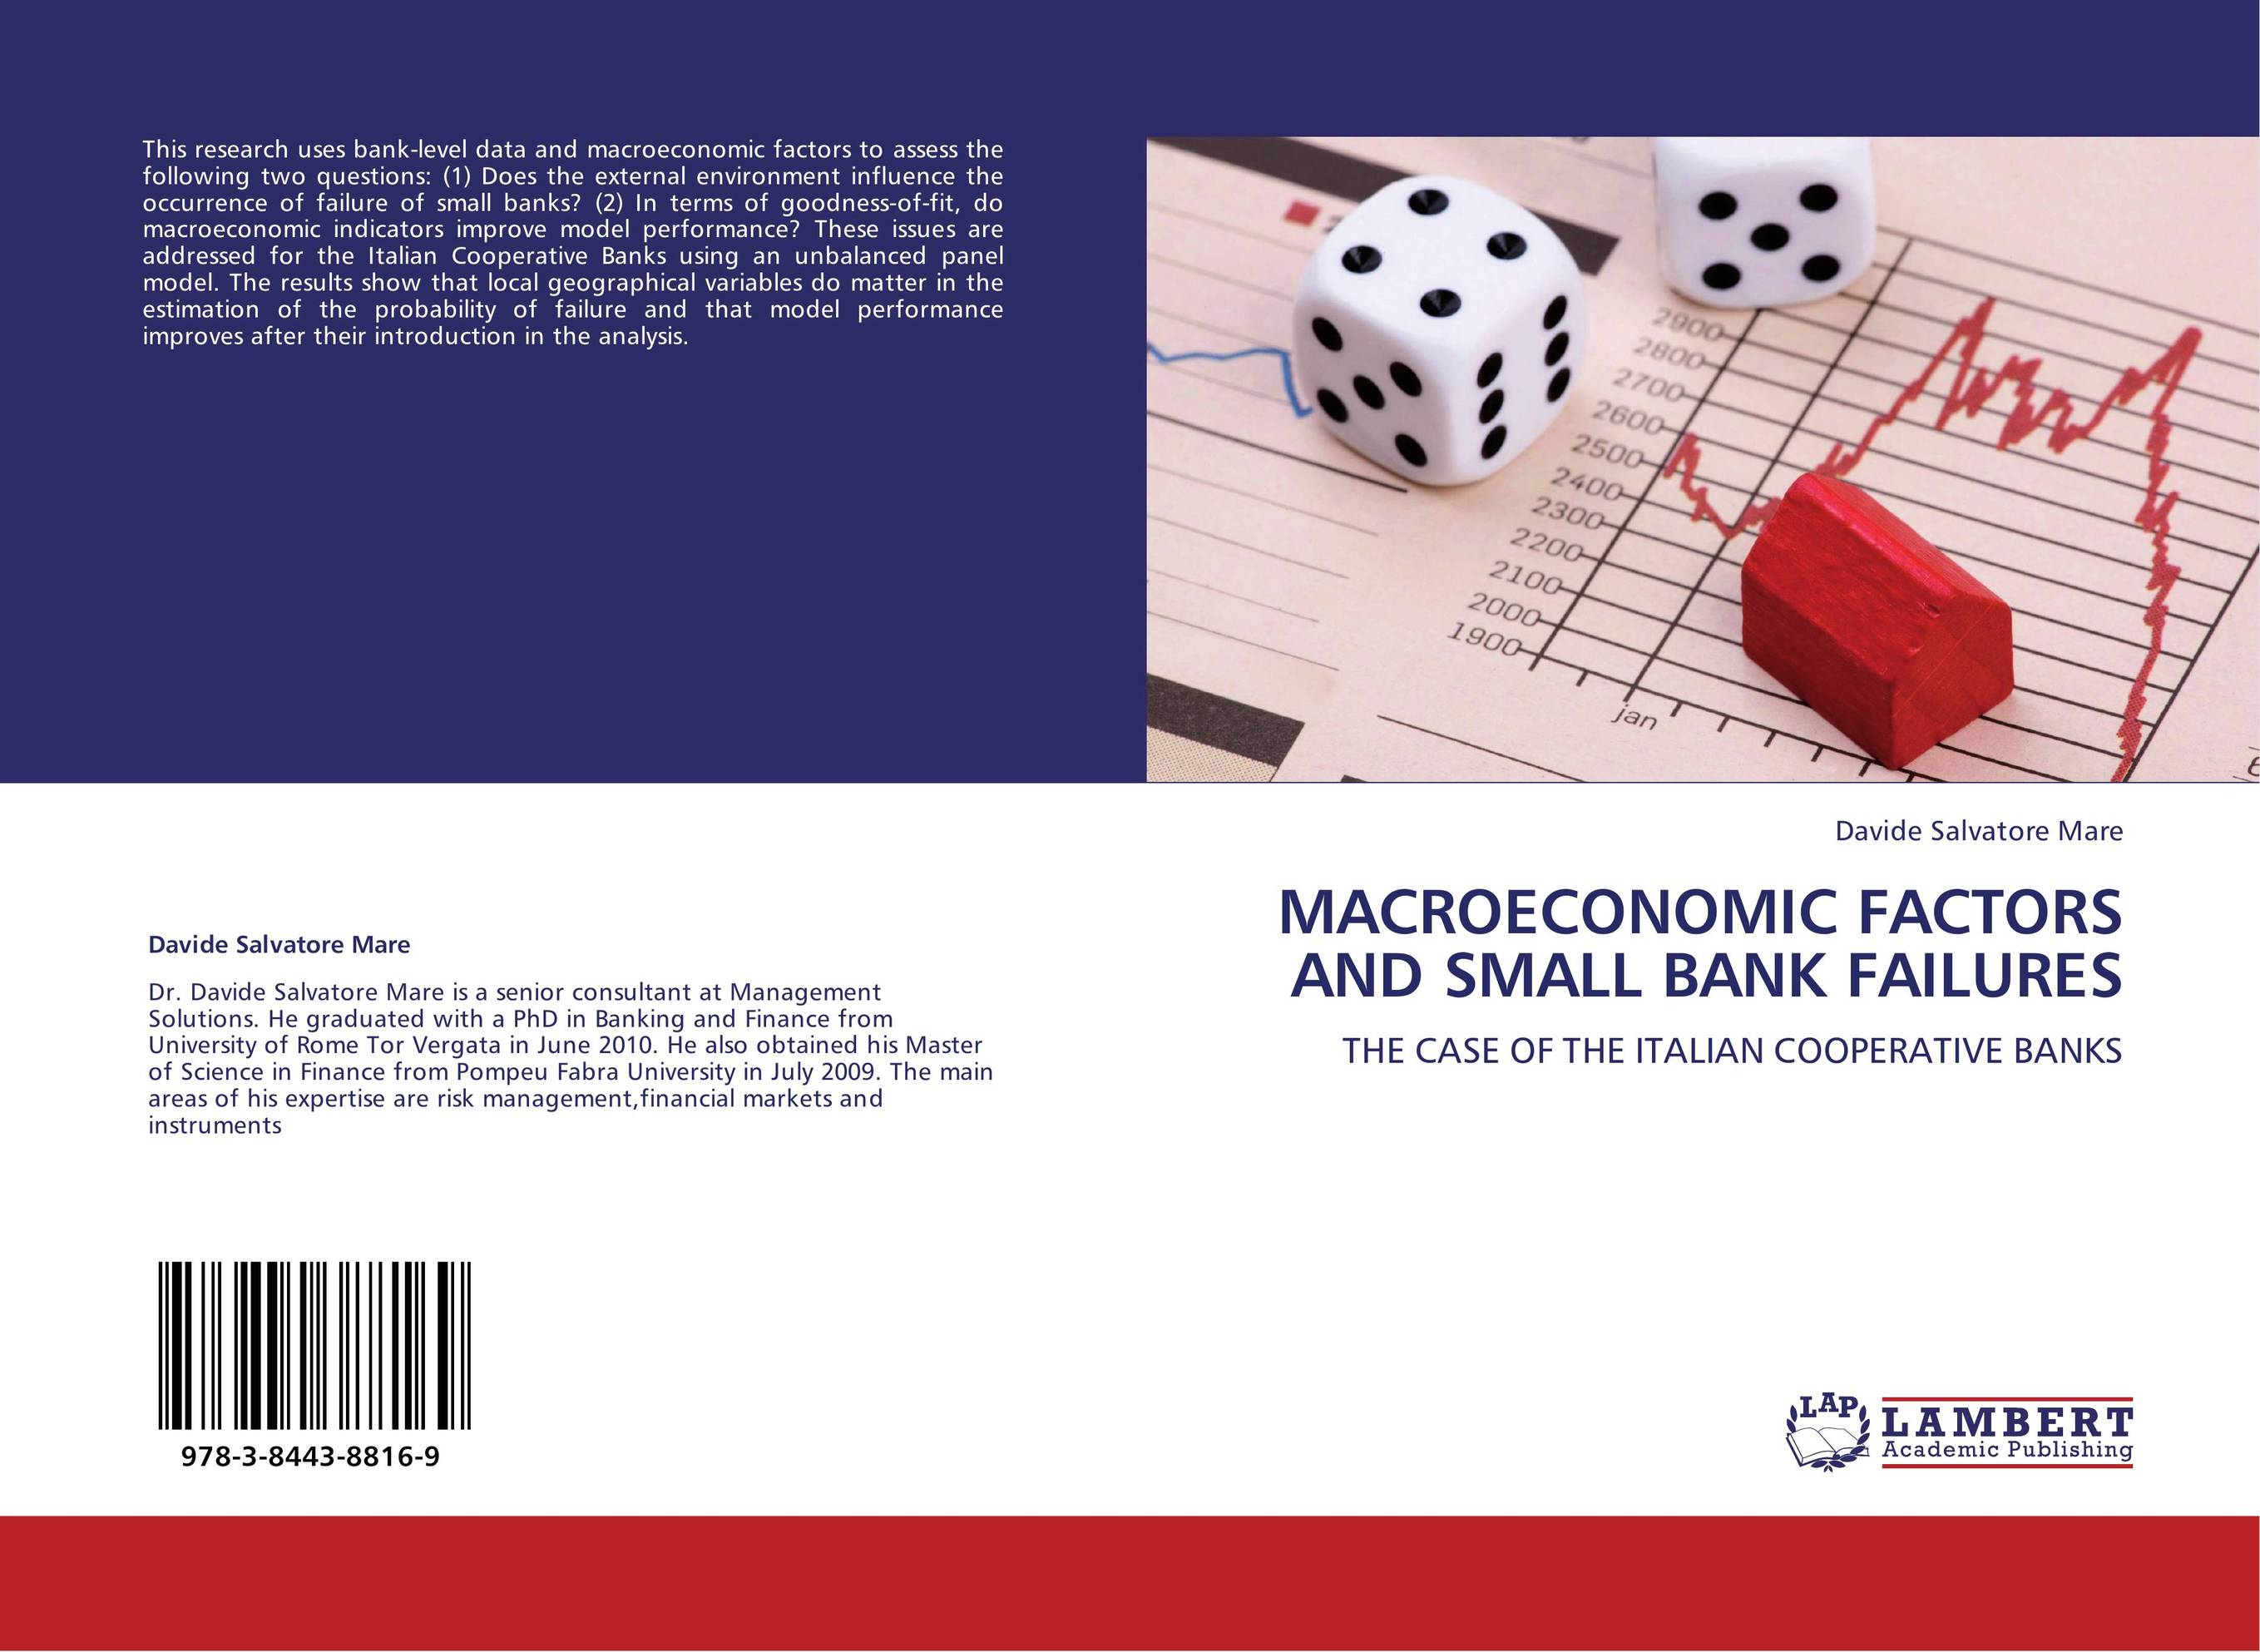 do macroeconomic factors determine the success The economic growth of a country may get hampered due to a number of factors, such as trade deficit and alterations in expenditures by governmental bodies generally, the economic growth of a country is adversely affected when there is a sharp rise in the prices of goods and services.